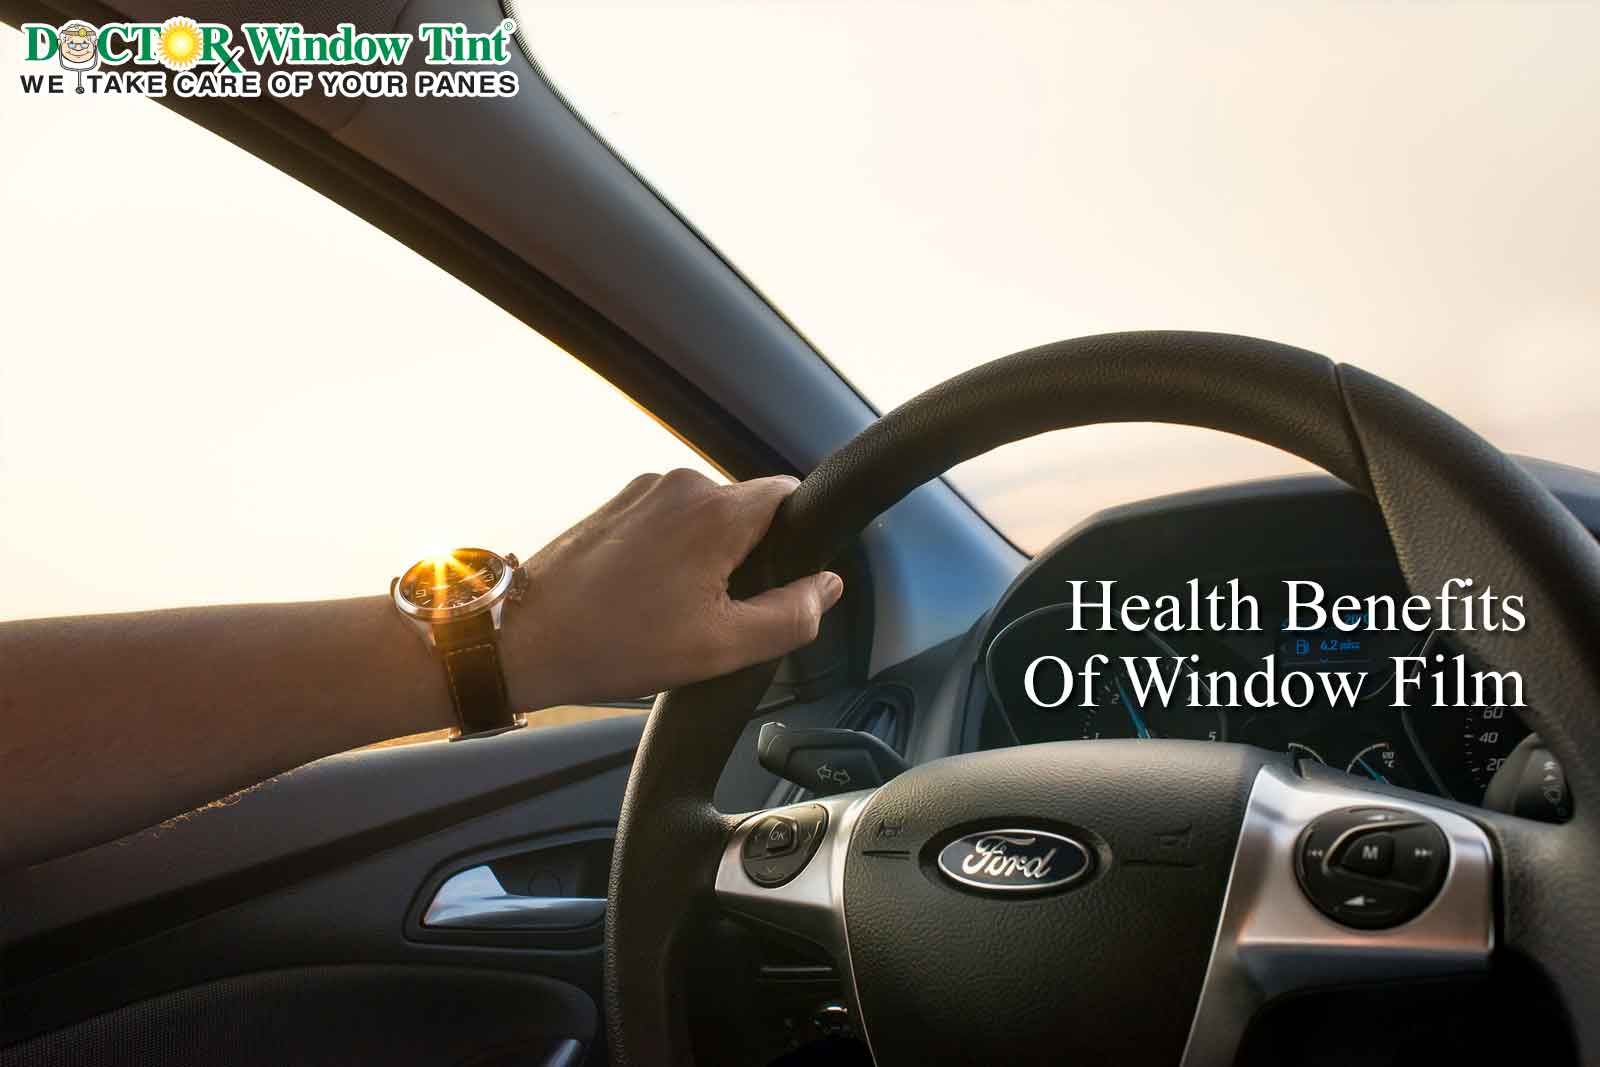 Benefits Of Window Film